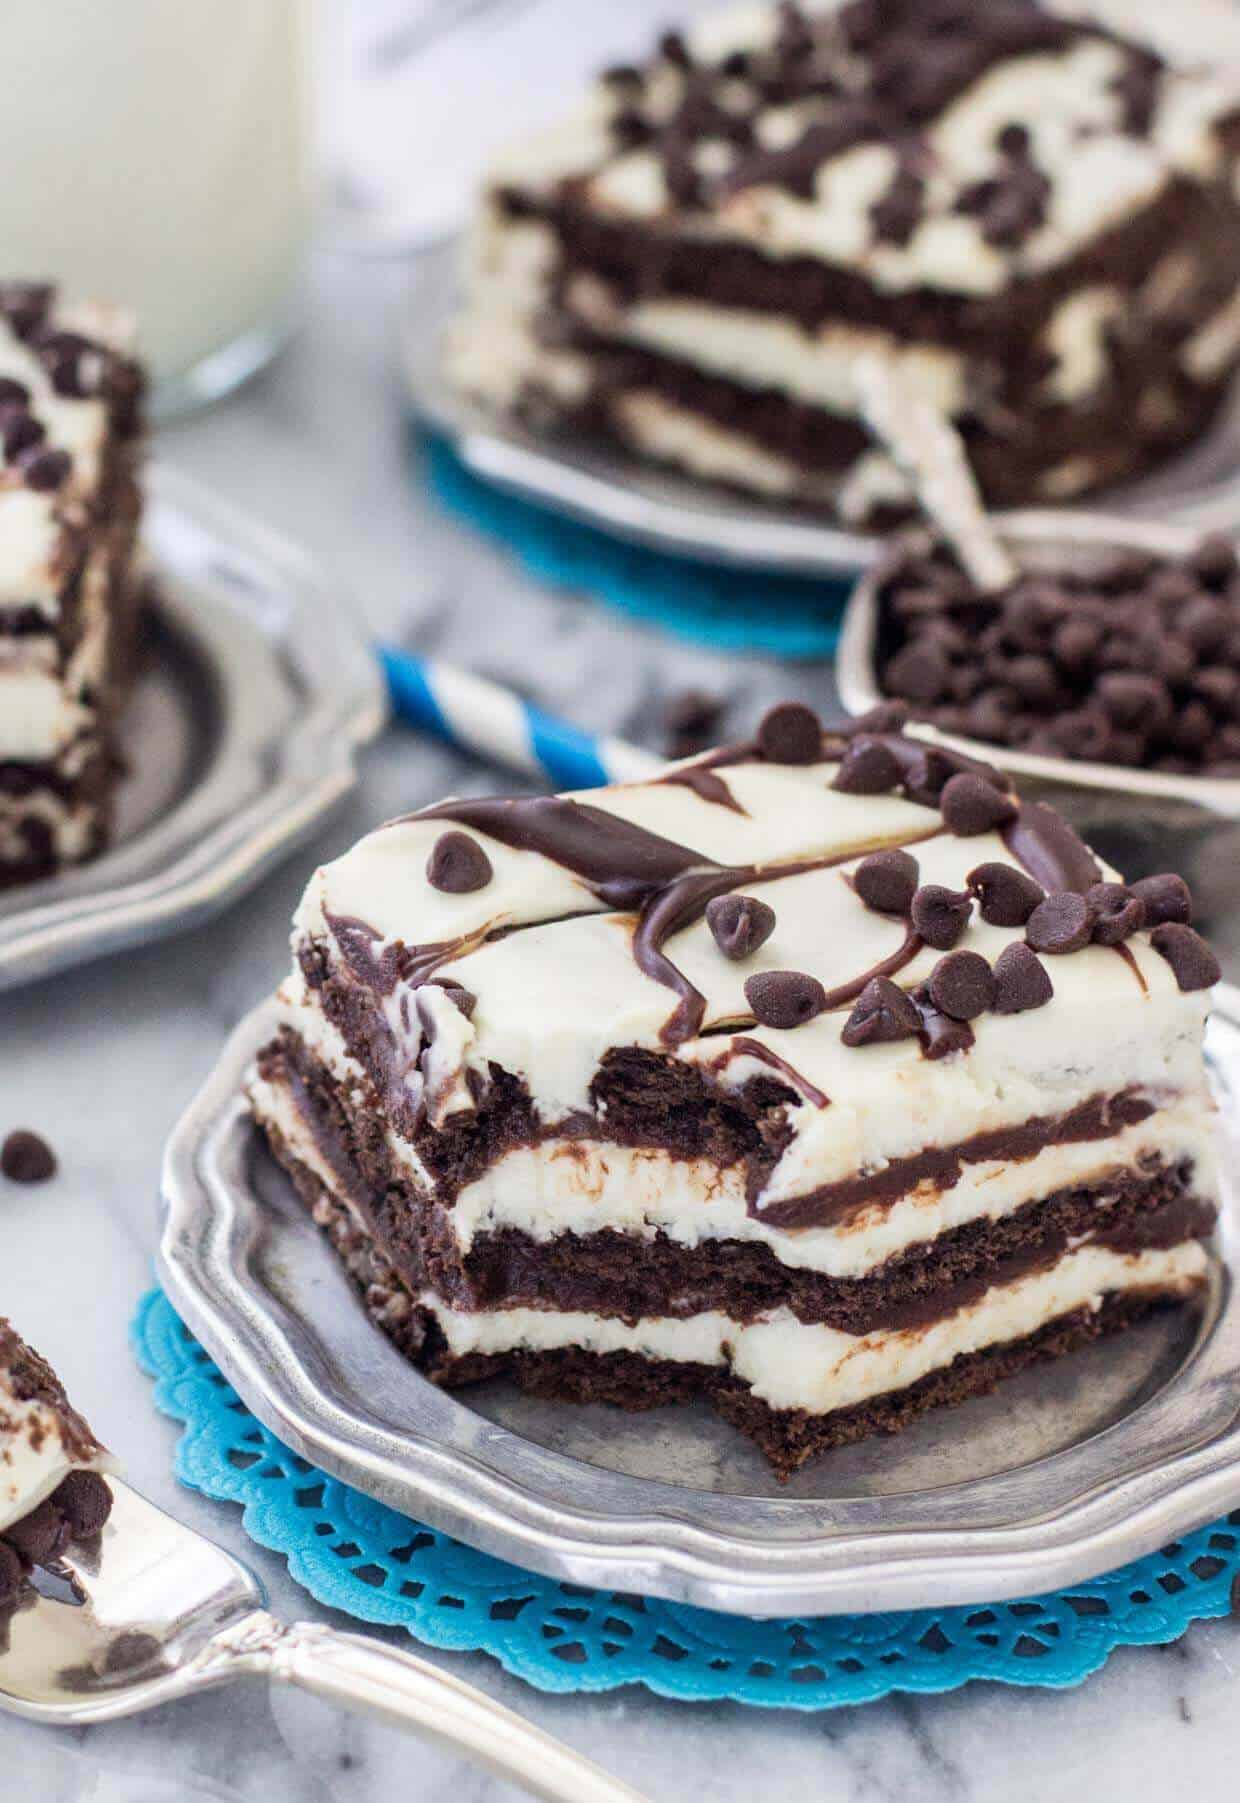 Chocolate Cream Cheese Icebox Cake